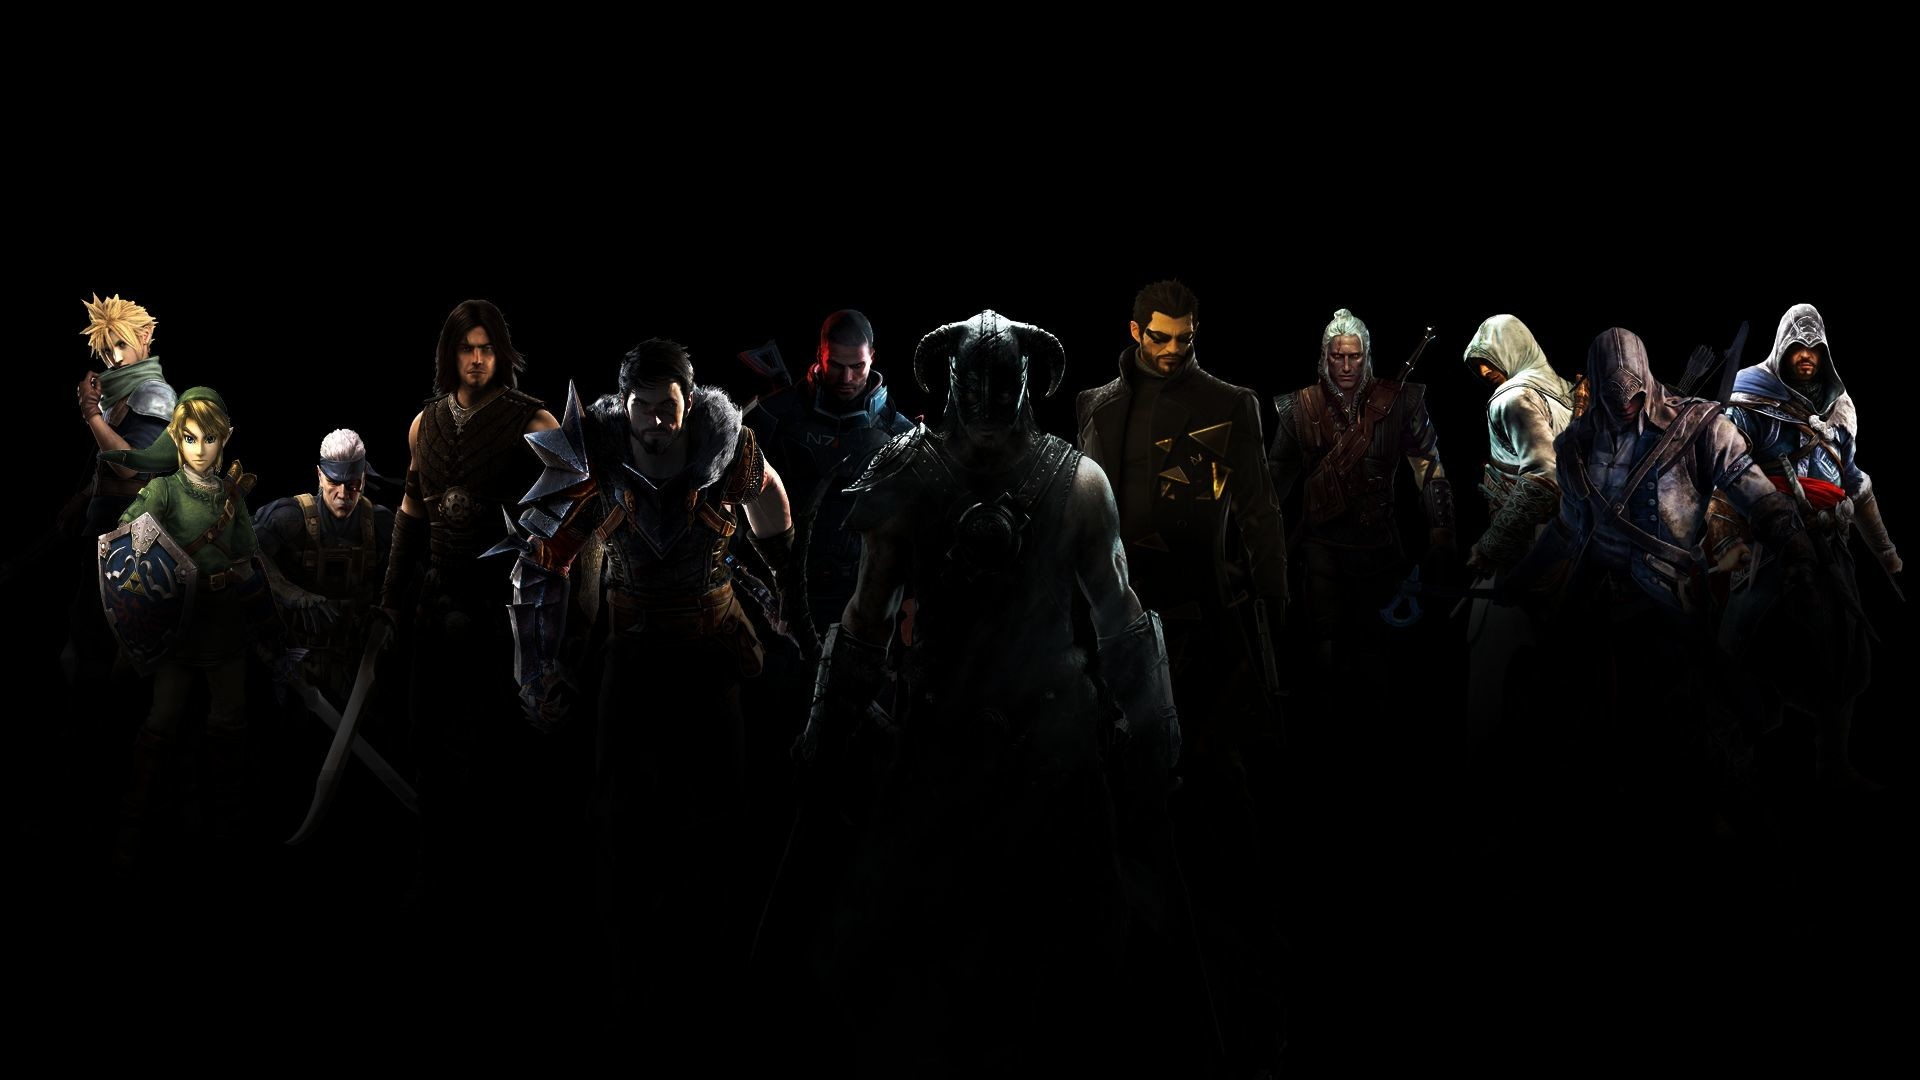 Hd Gaming Wallpapers 80 Background Pictures